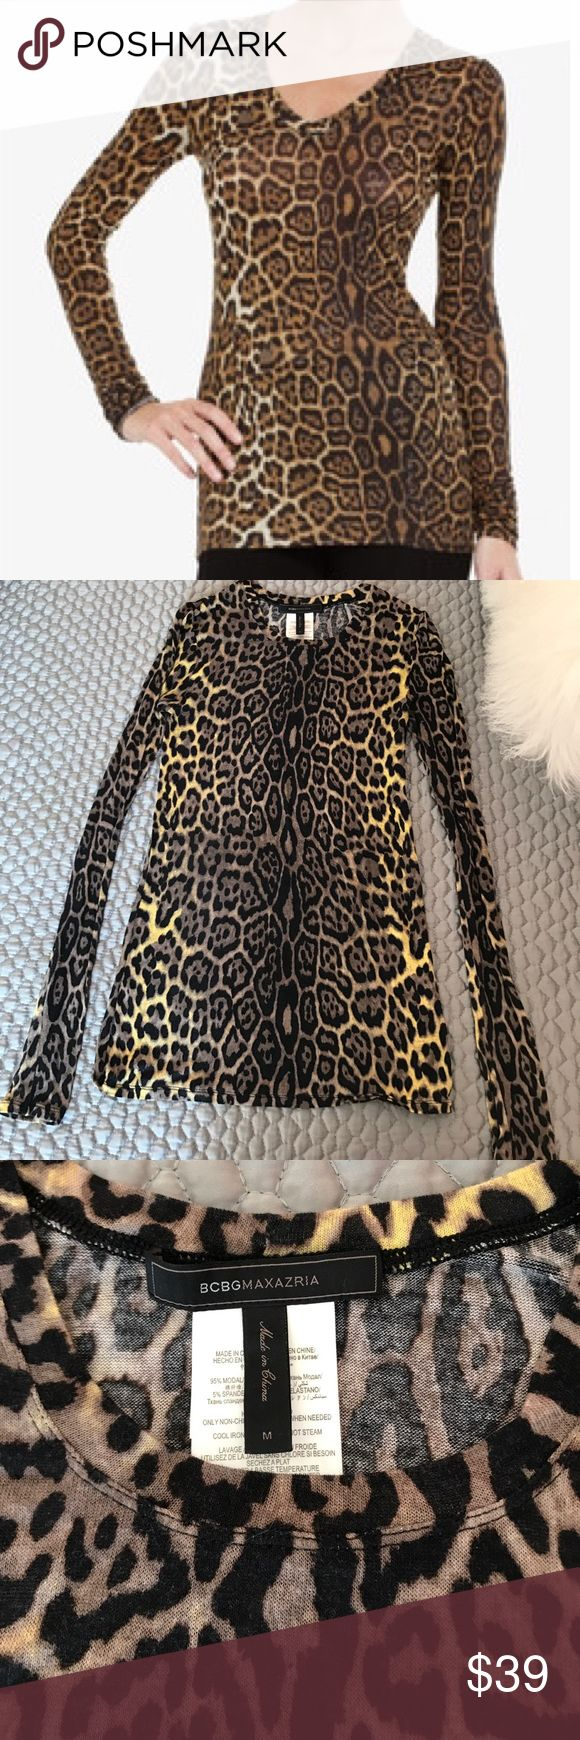 BCBGMAXAXRIA Long Sleeve Leopard Top! The softest and lightest weight statement tee from BCBGMAXAXRIA. Perfect for transitional weather! BCBGMaxAzria Tops Tees - Long Sleeve